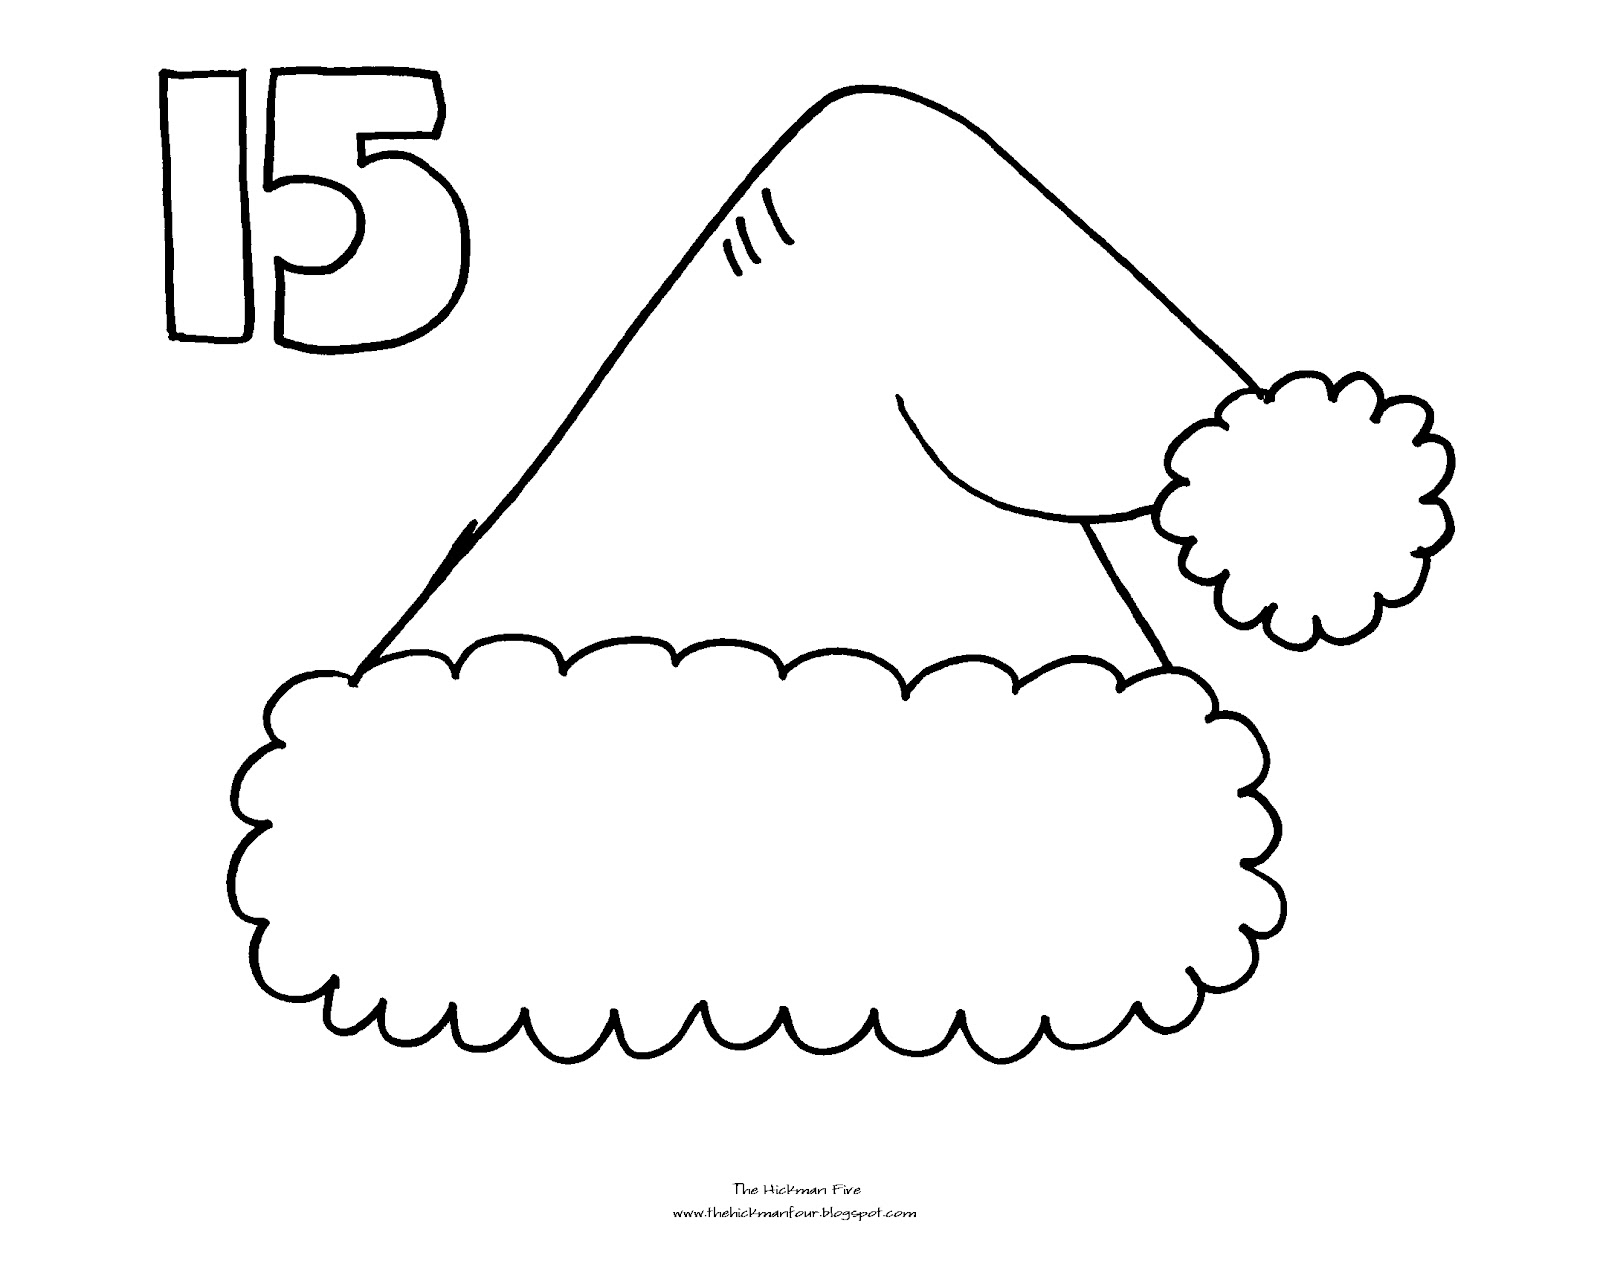 Free Christmas Tree Calendar Countdown Calendar Template Countdown Coloring Pages